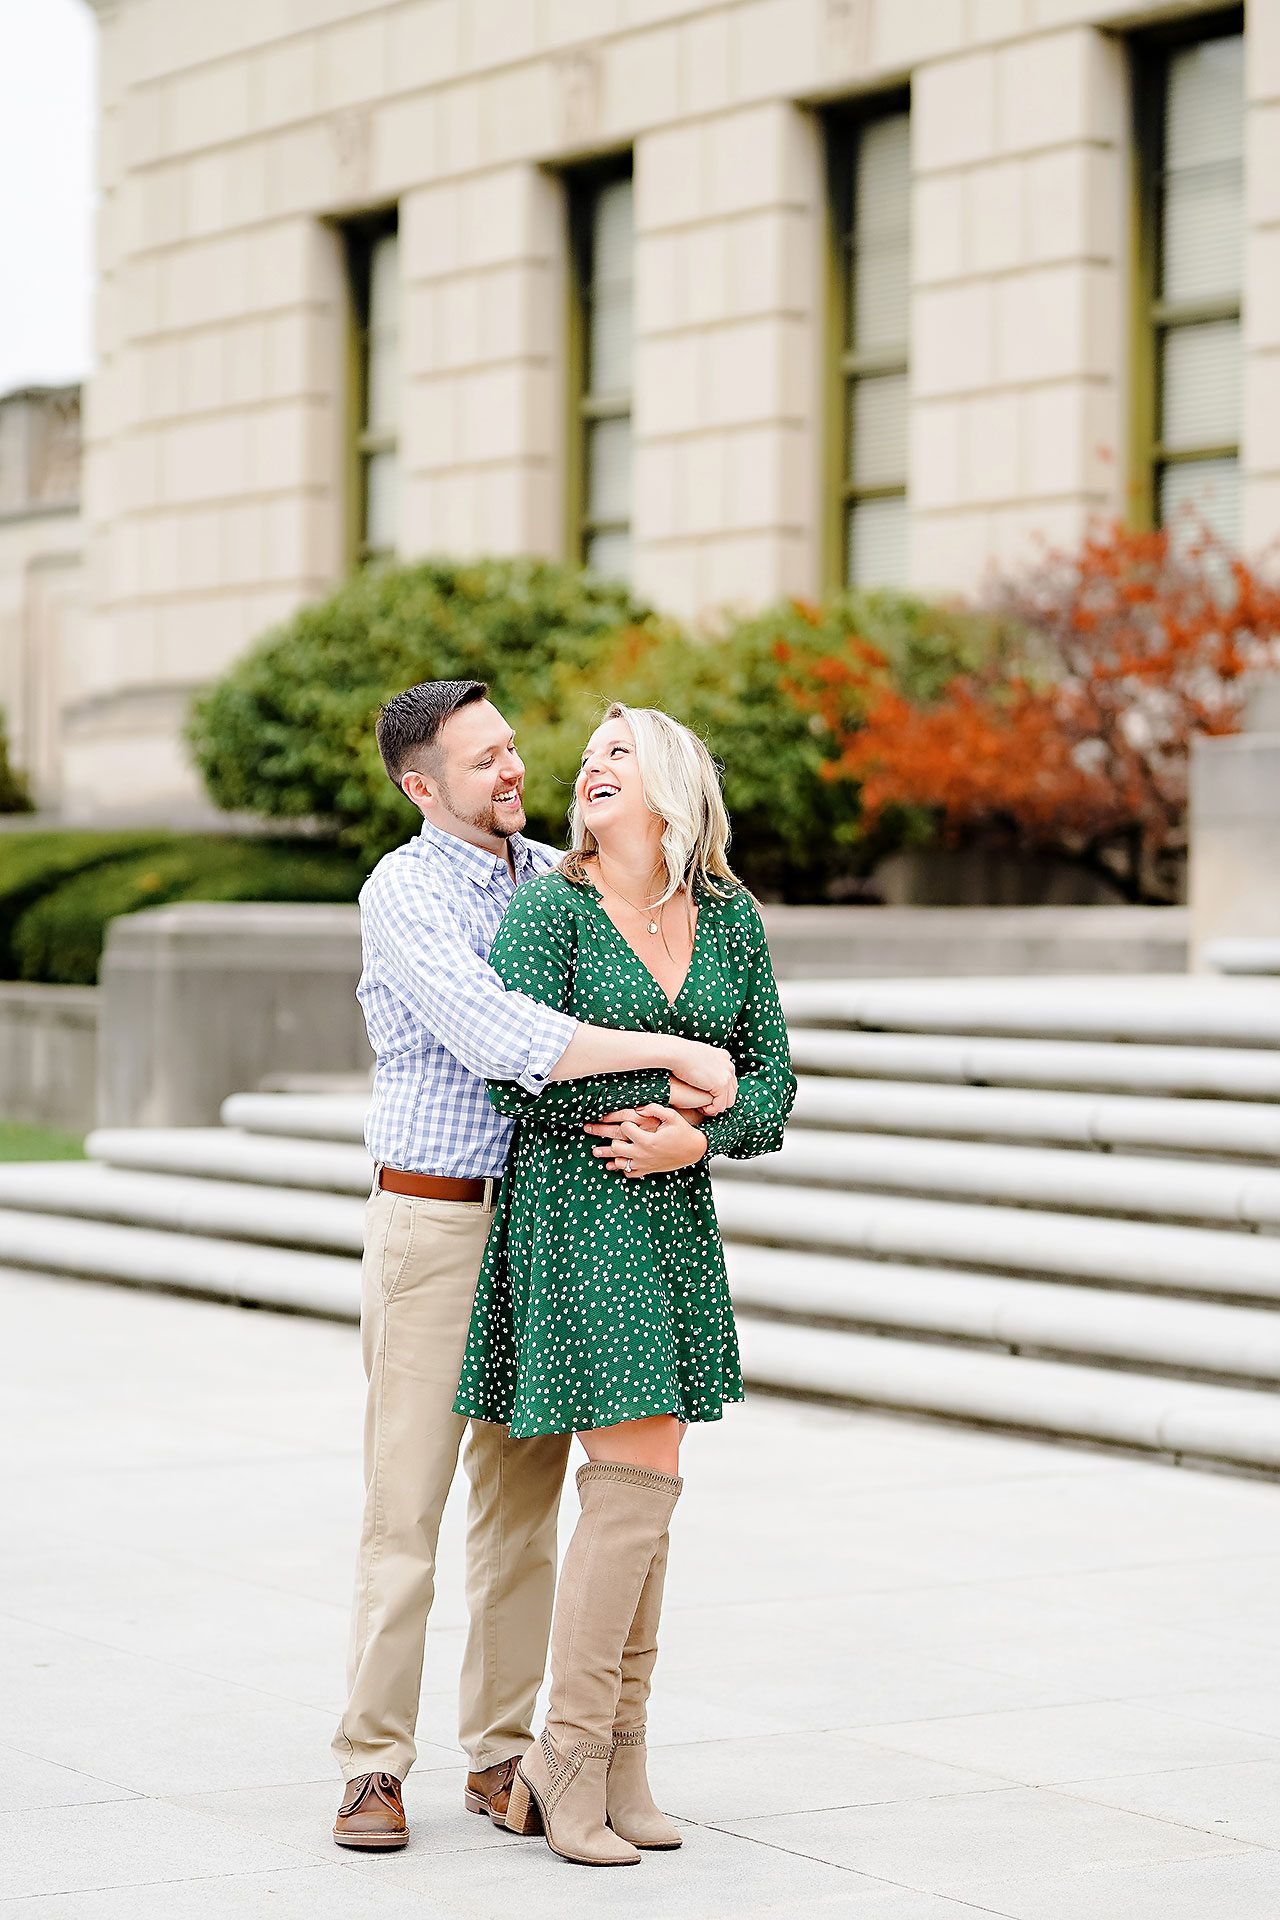 Kristen Jonny Indianapolis Downtown Engagement Session 058